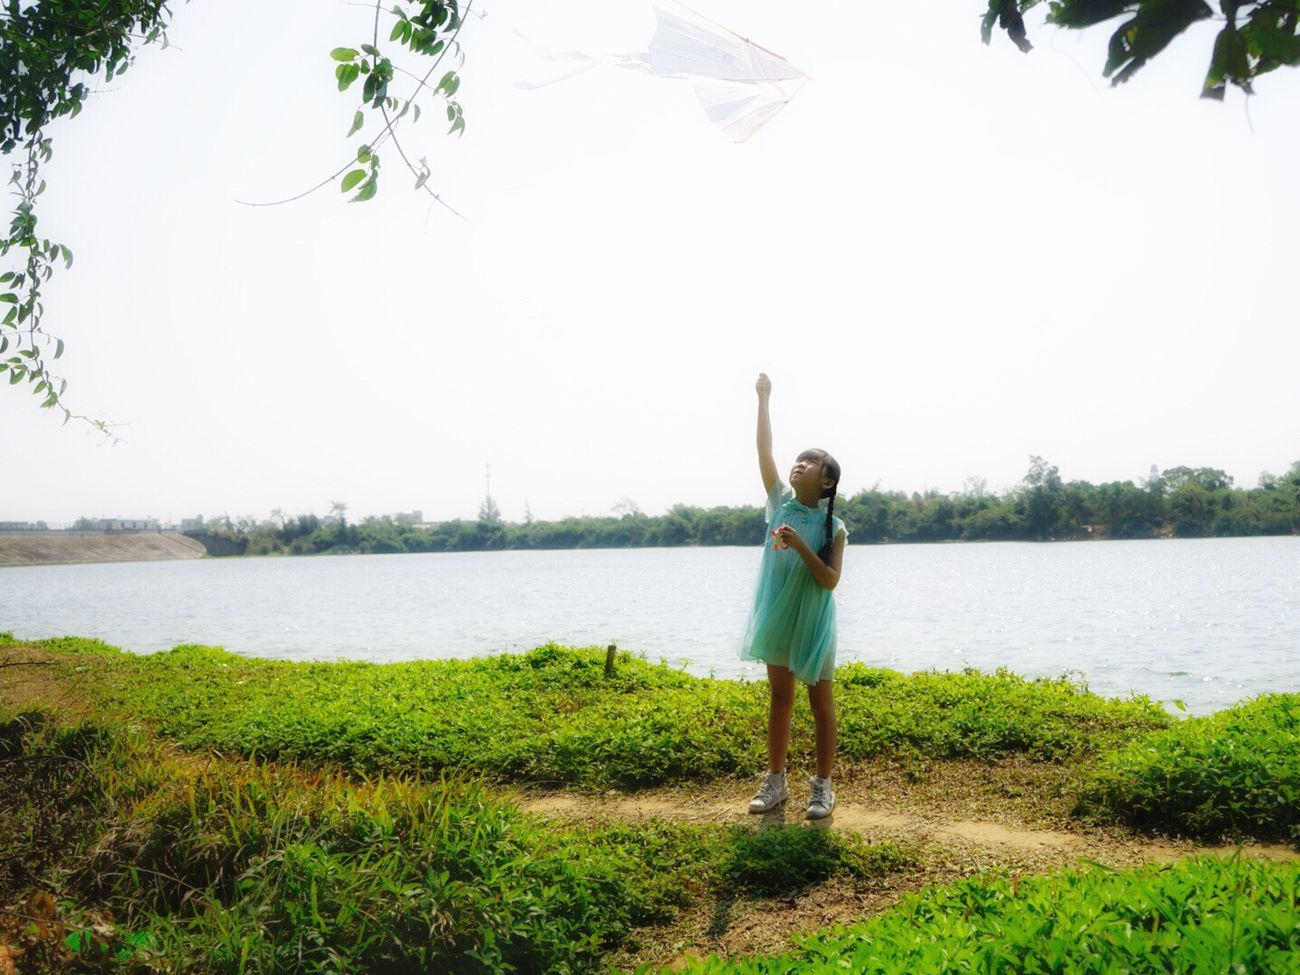 My little fairies❤️ Full Length Casual Clothing Rear View Water One Person People Childhood Nature Outdoors Day Sky Vacations Adult Lovely View Flying A Kite Green Color Countryside